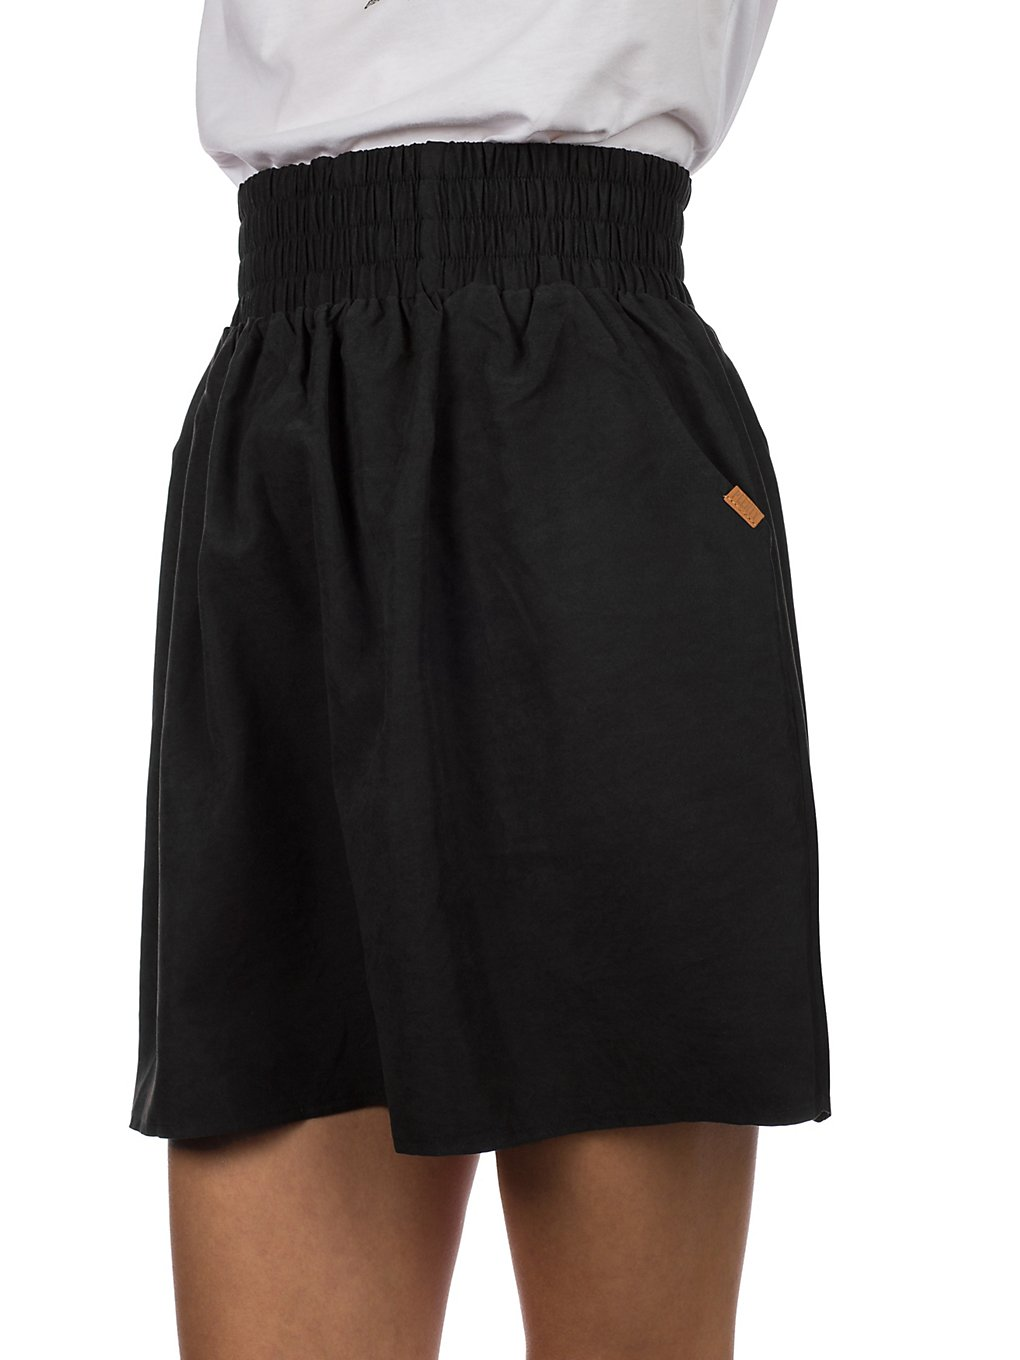 Plenty Victoria Skirt black